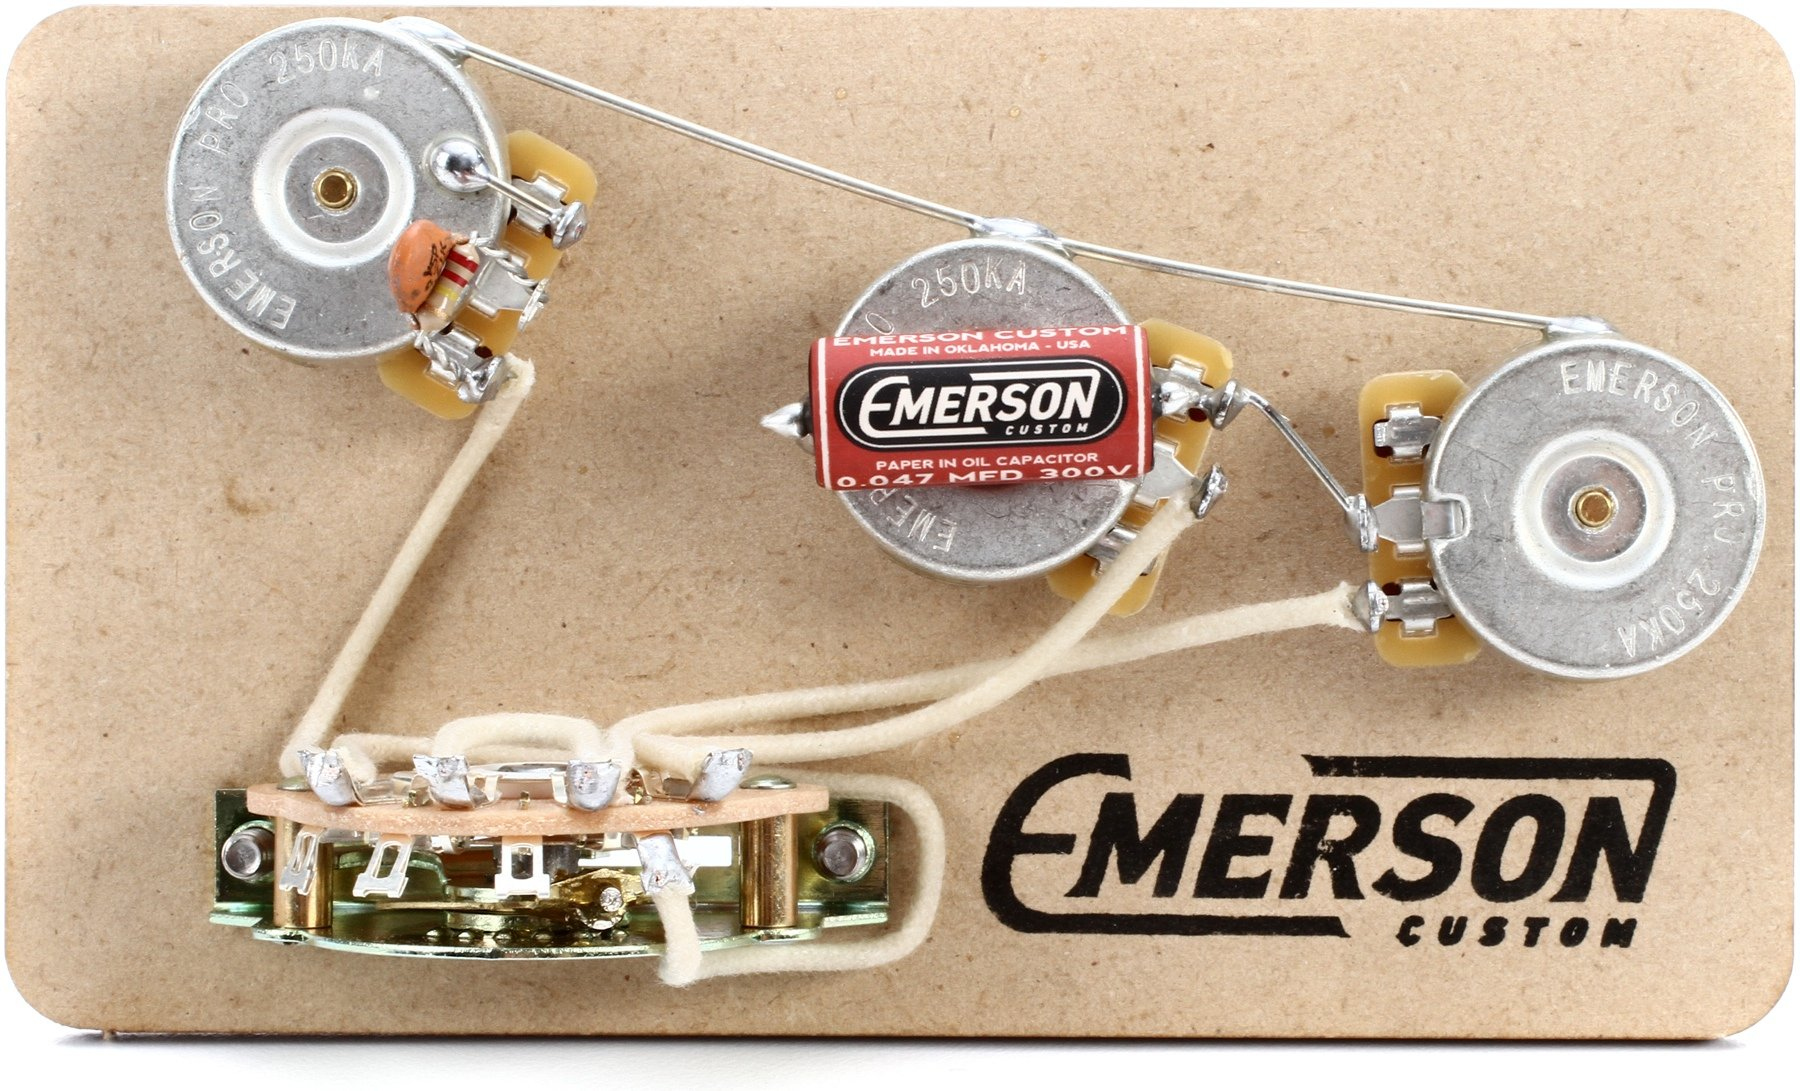 Emerson Custom 5 Way Prewired Kit For Fender Stratocasters 250k Guitar Wiring Harness Pickup Volume Tone 3way Switch Jack Pots Image 1